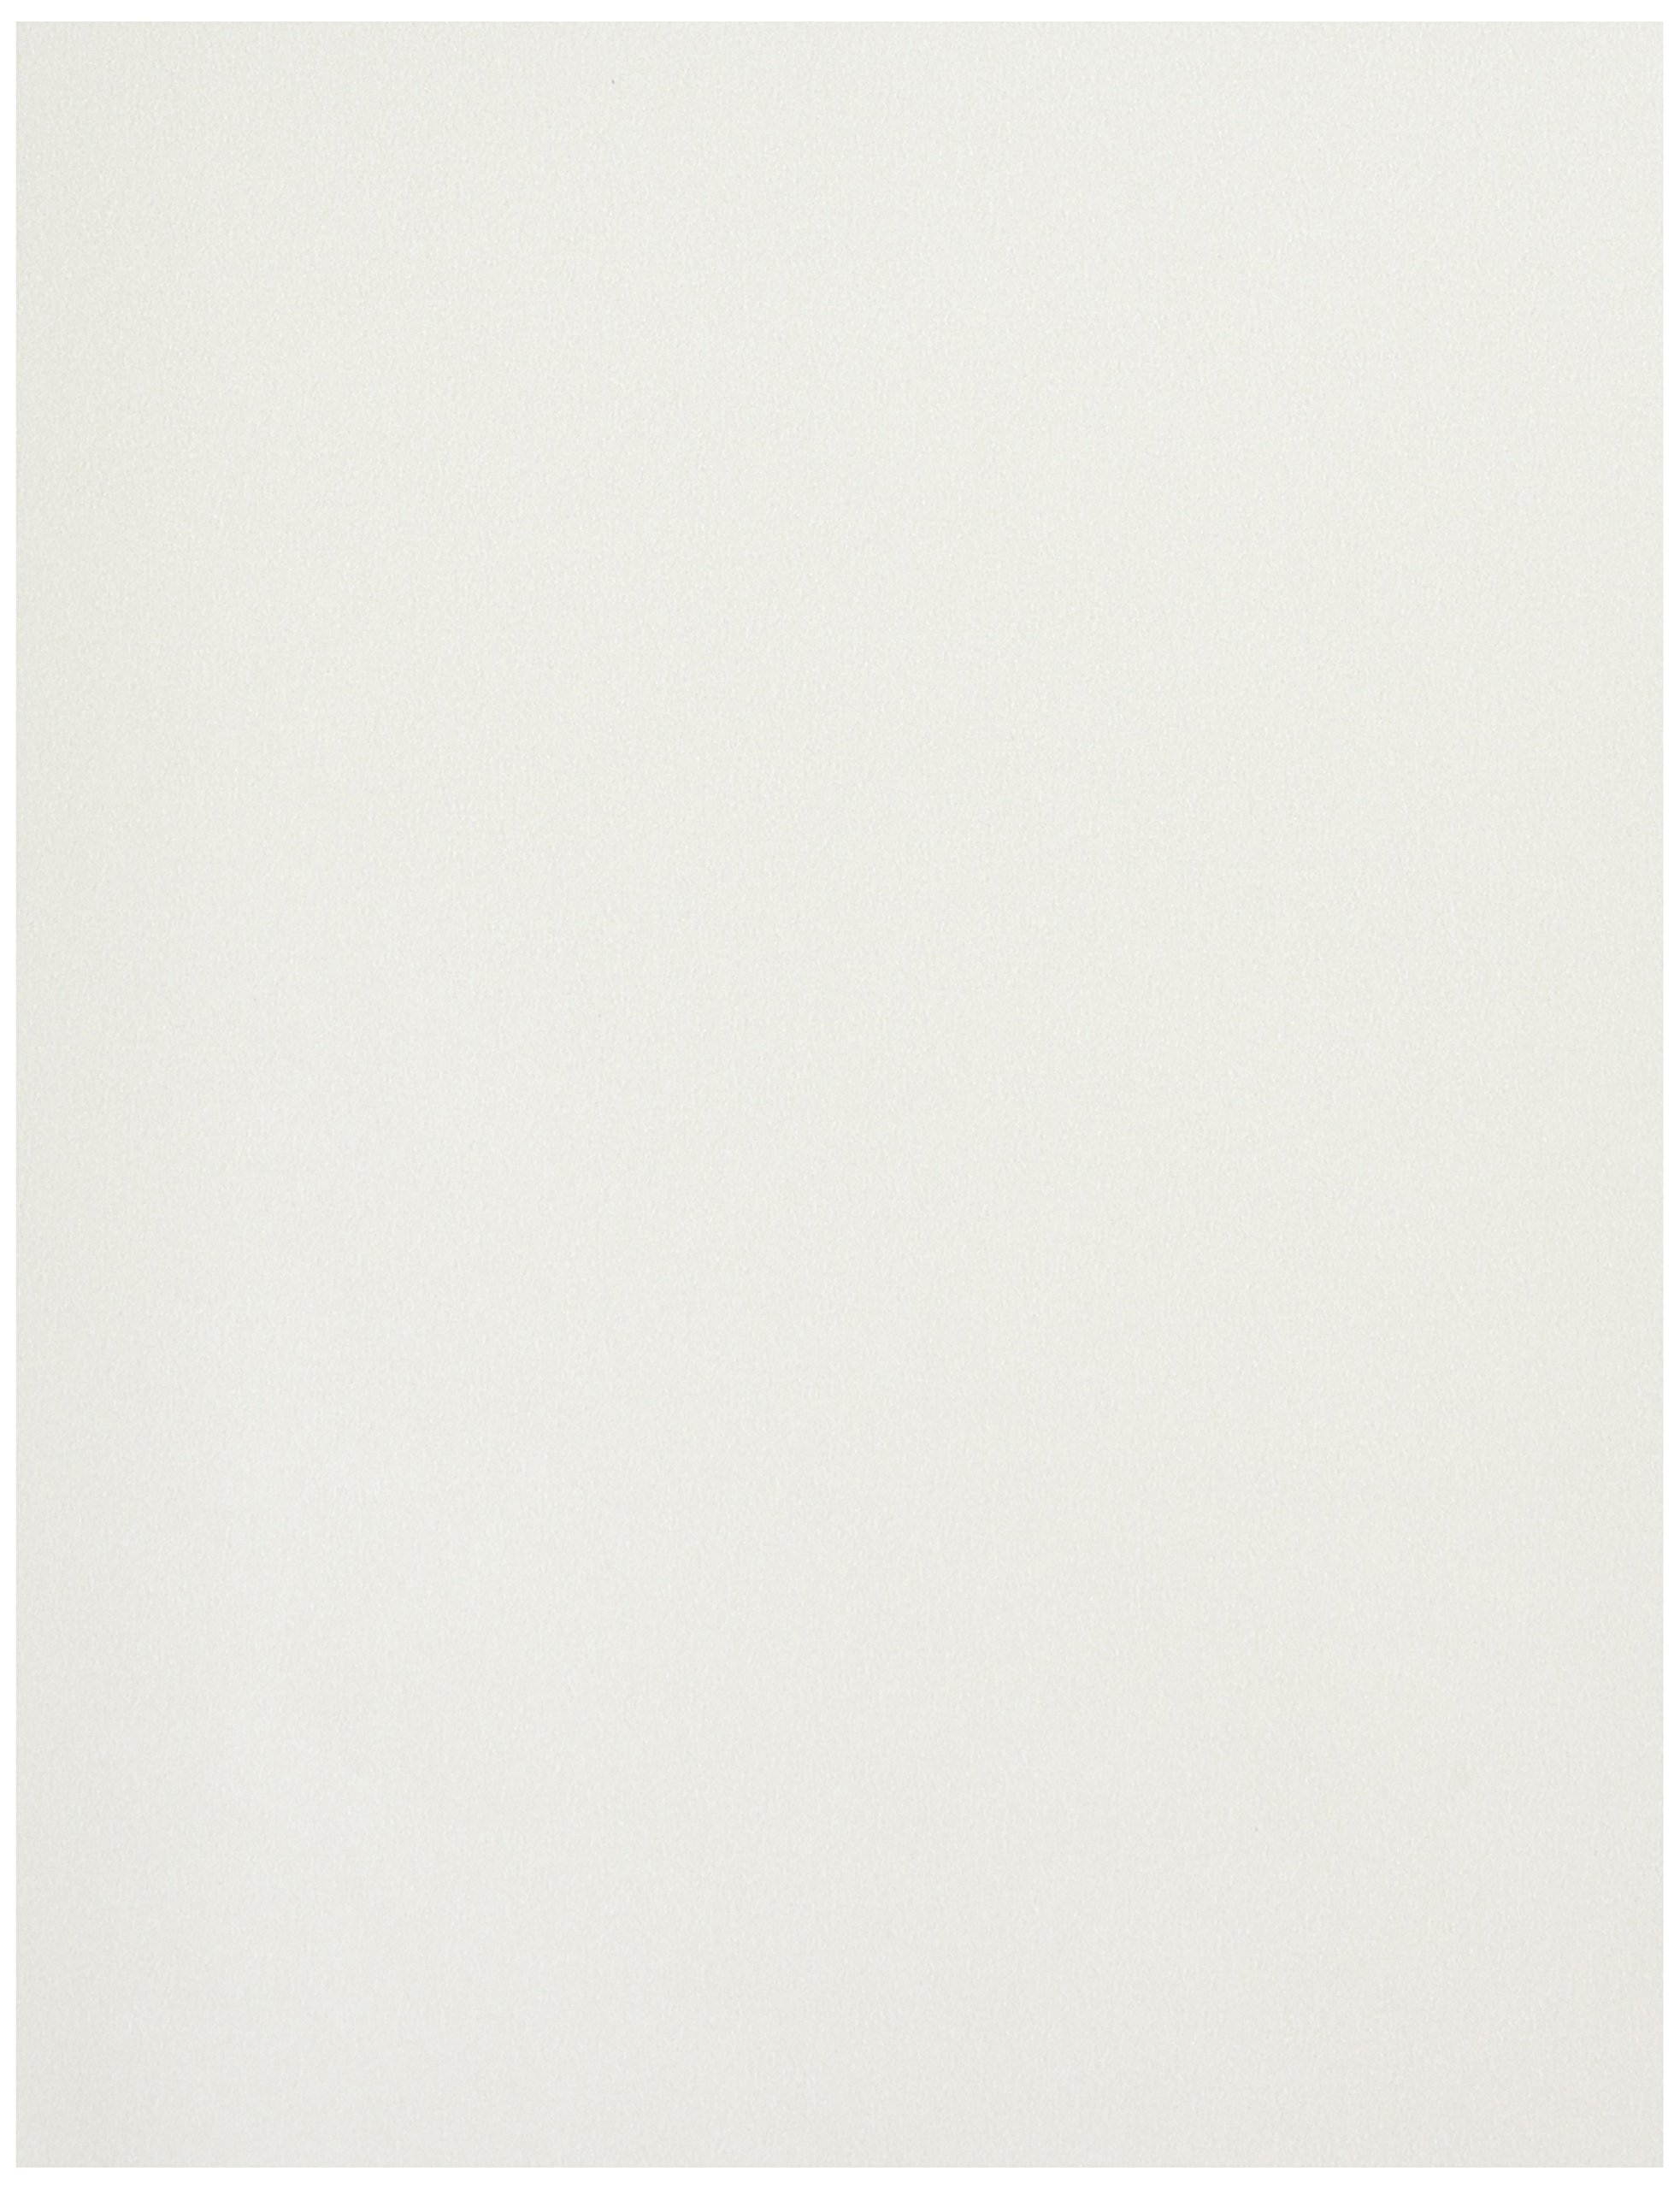 Accent Design Paper Accents Vellum8.5x11Silver by Accent Design Paper Accents (Image #1)